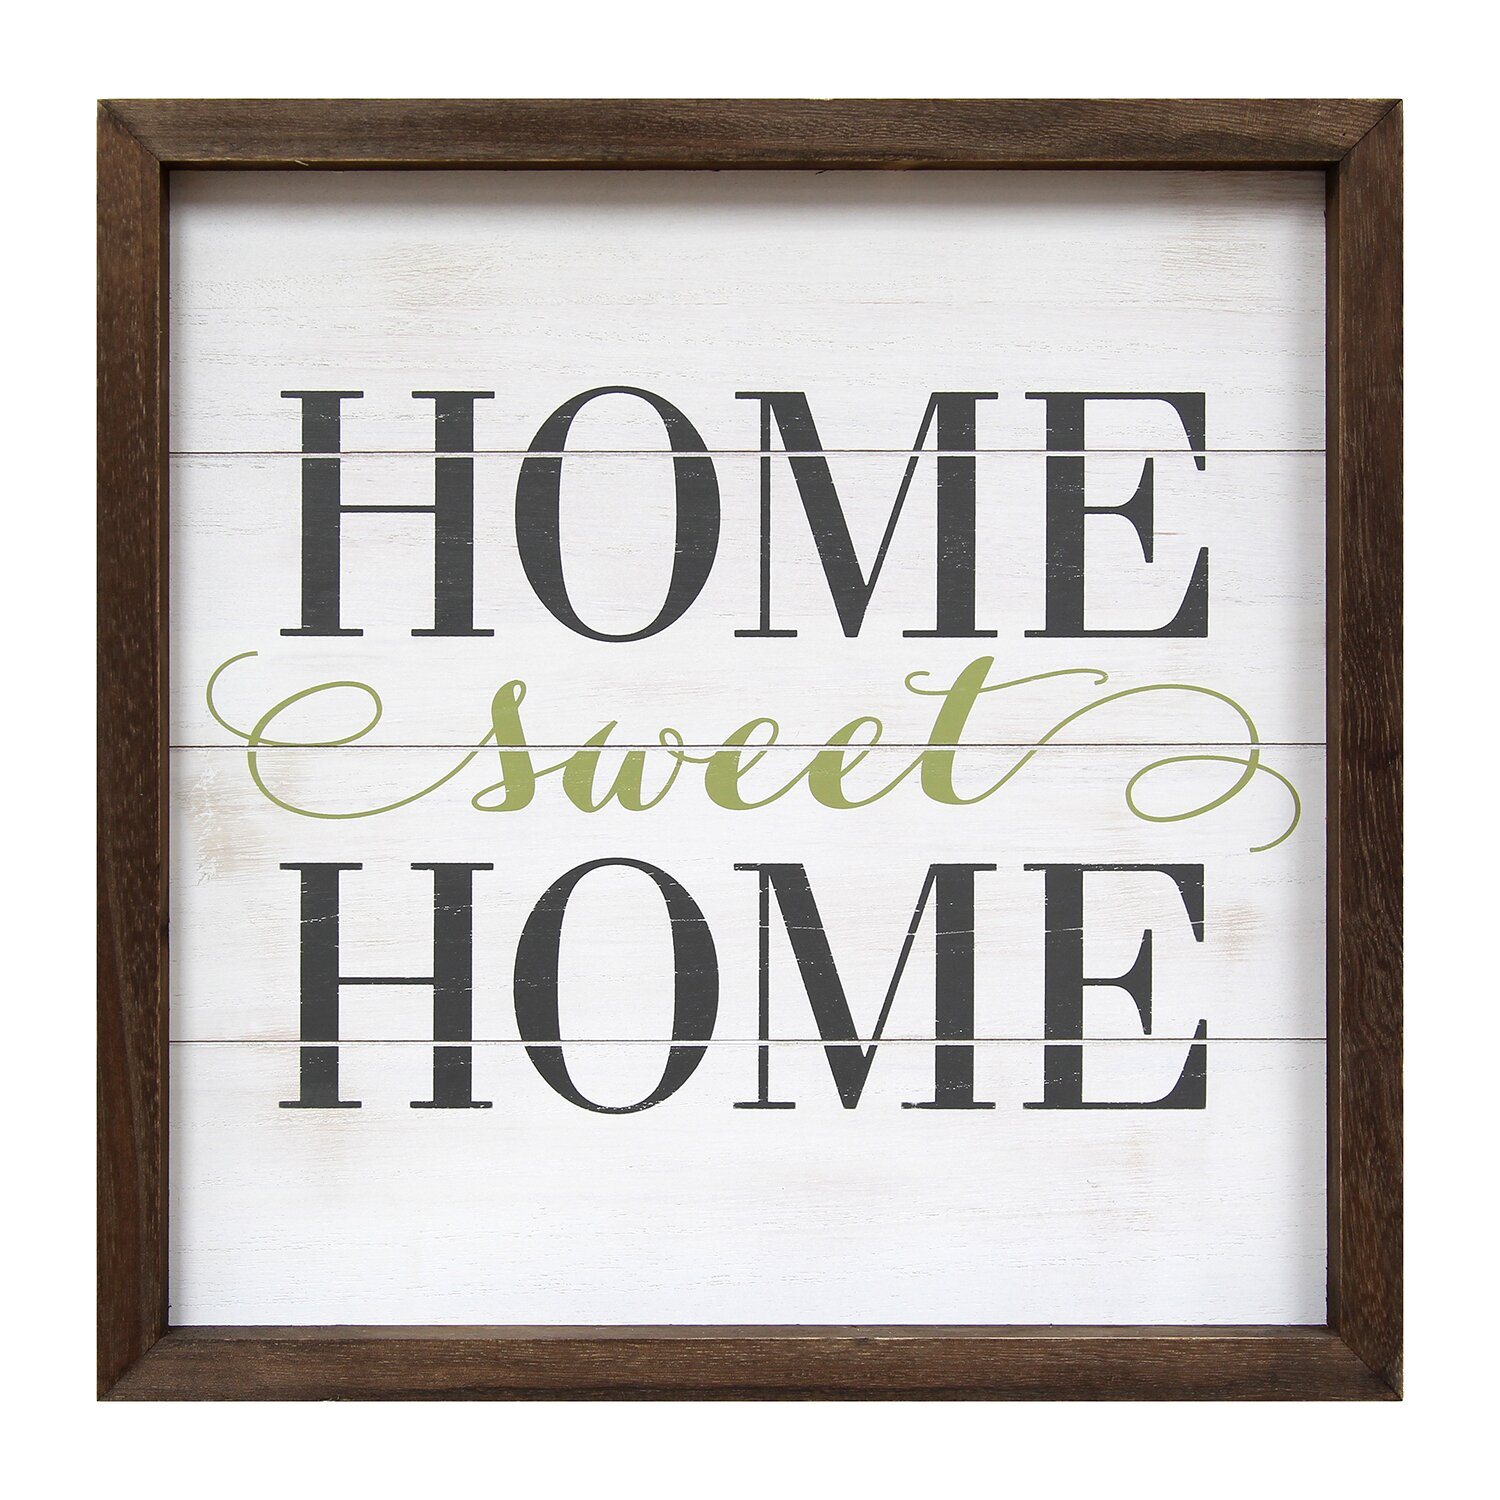 Stratton home decor home sweet home framed textual art for Home by decor